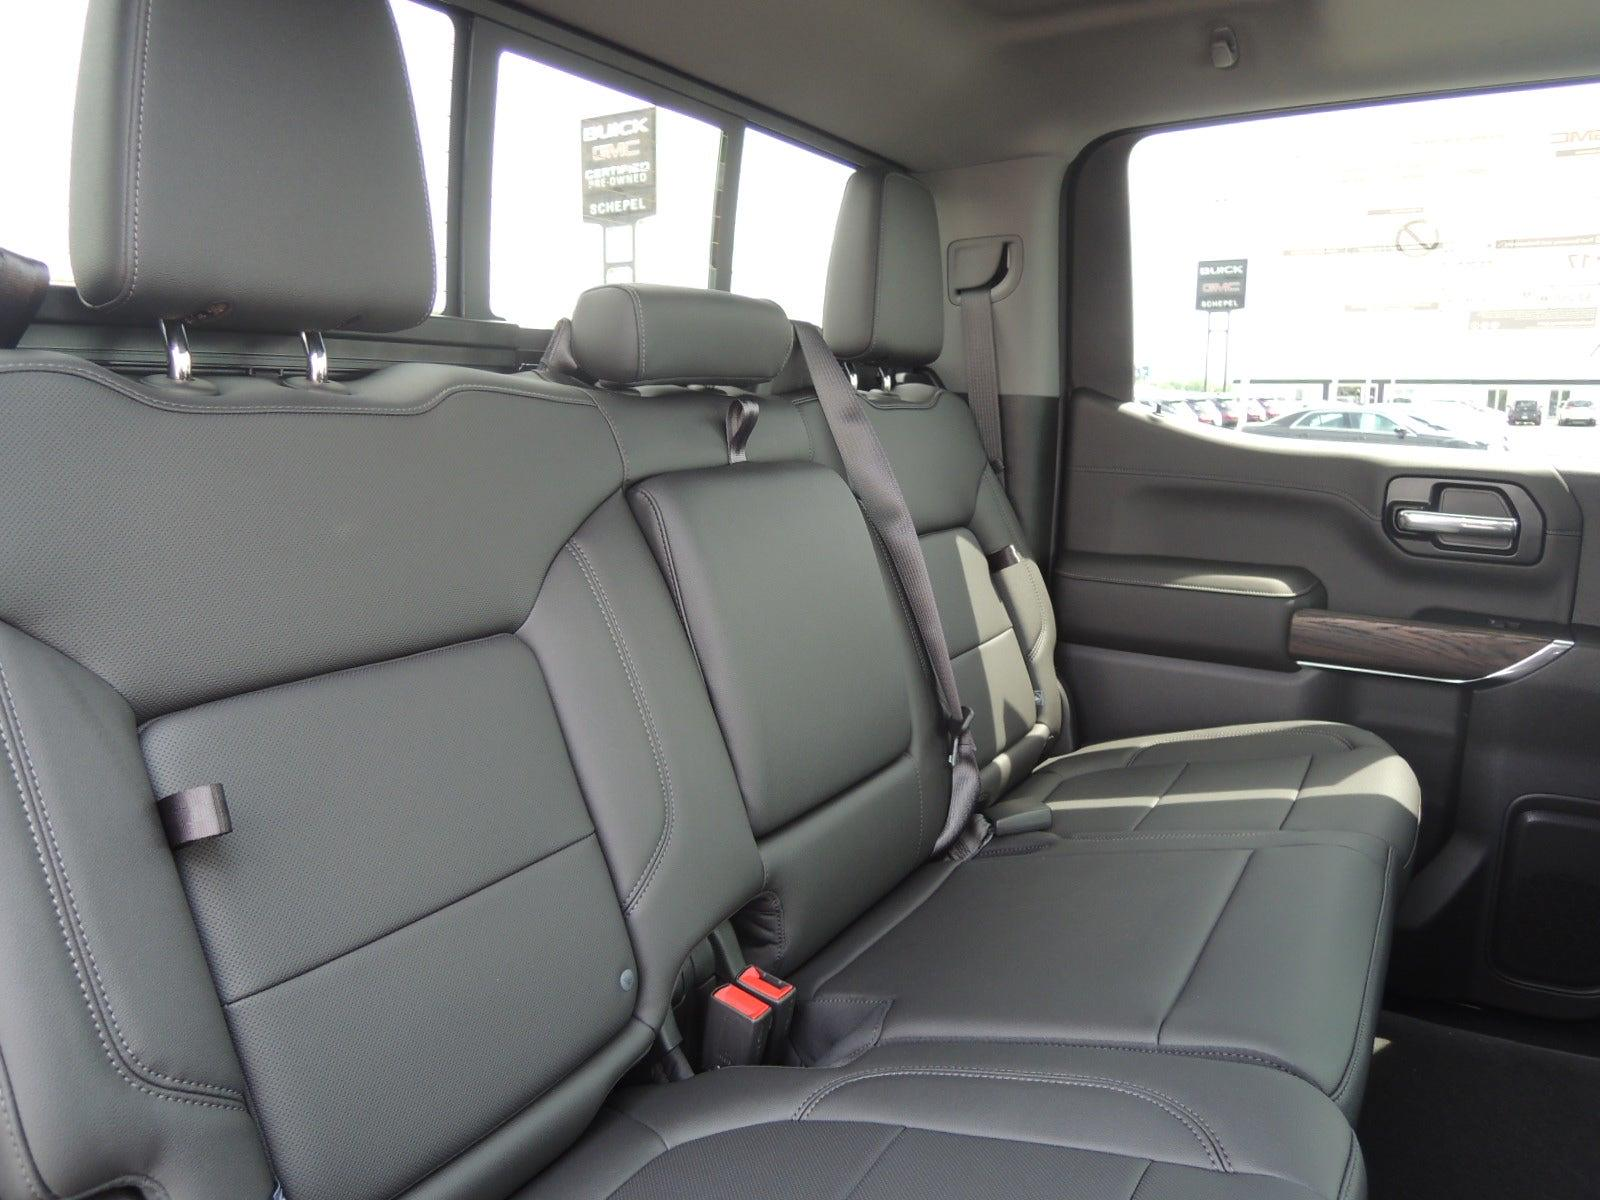 2021 GMC Sierra 1500 Crew Cab 4x4, Pickup #MT282 - photo 10